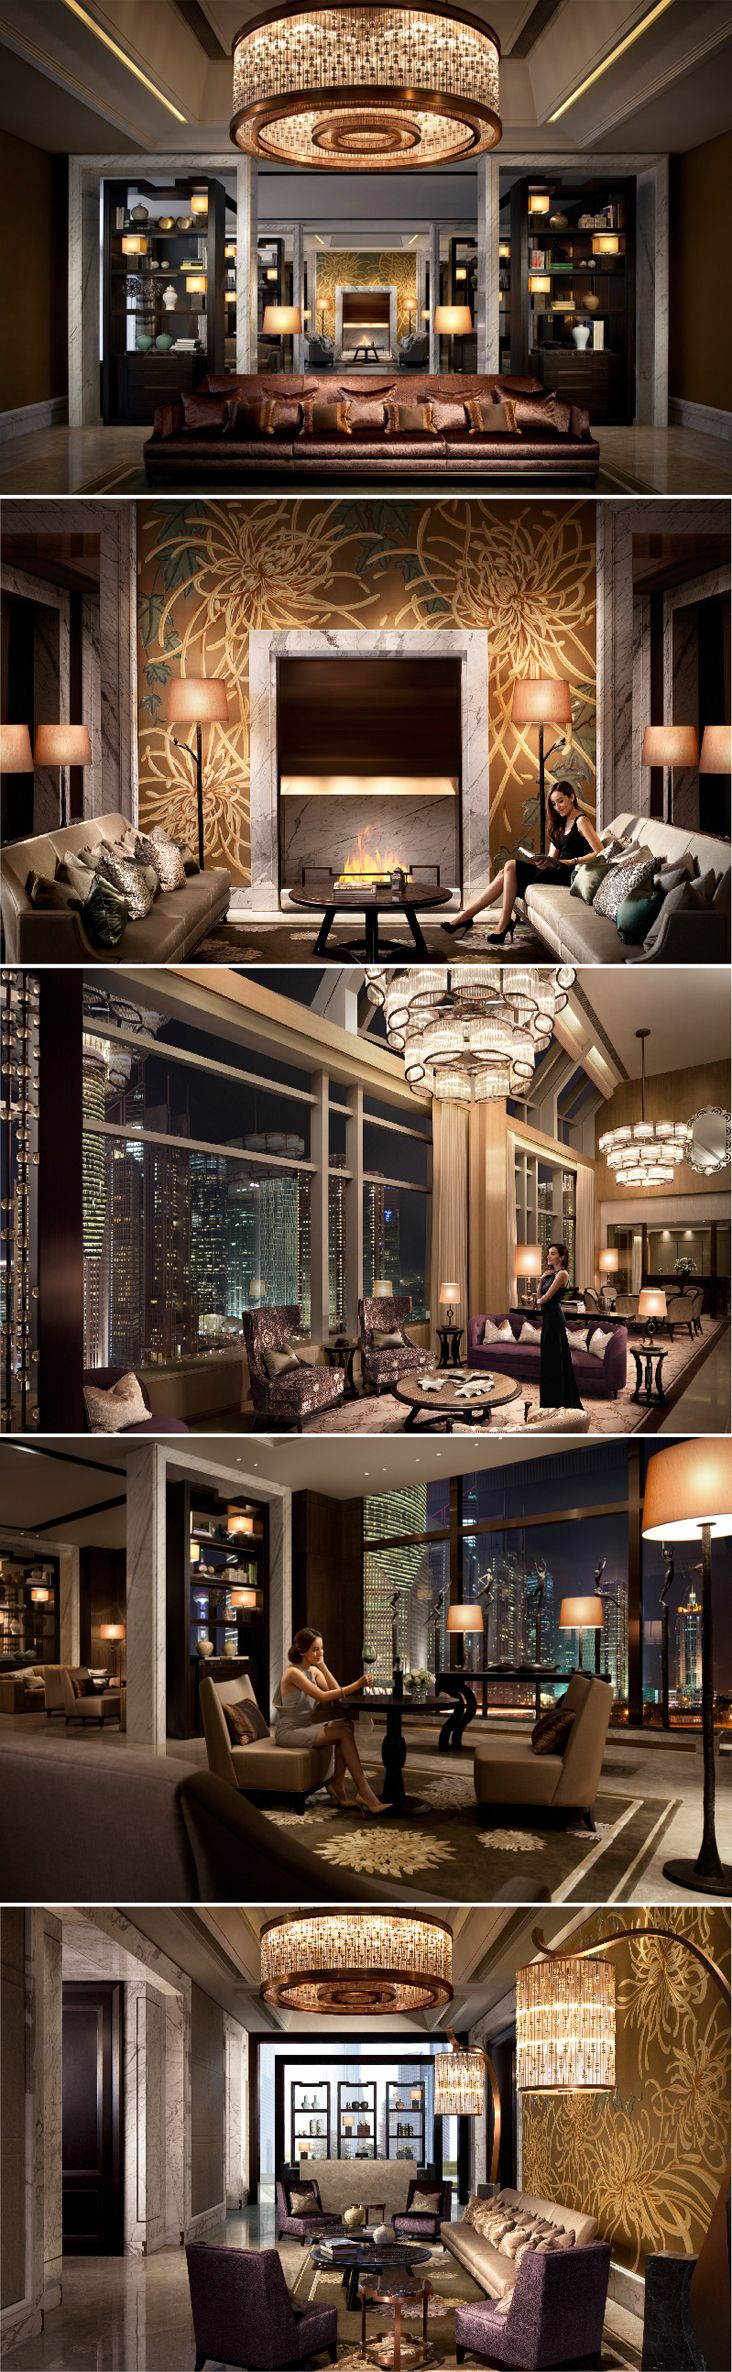 Wow. Amazing luxury apartment!